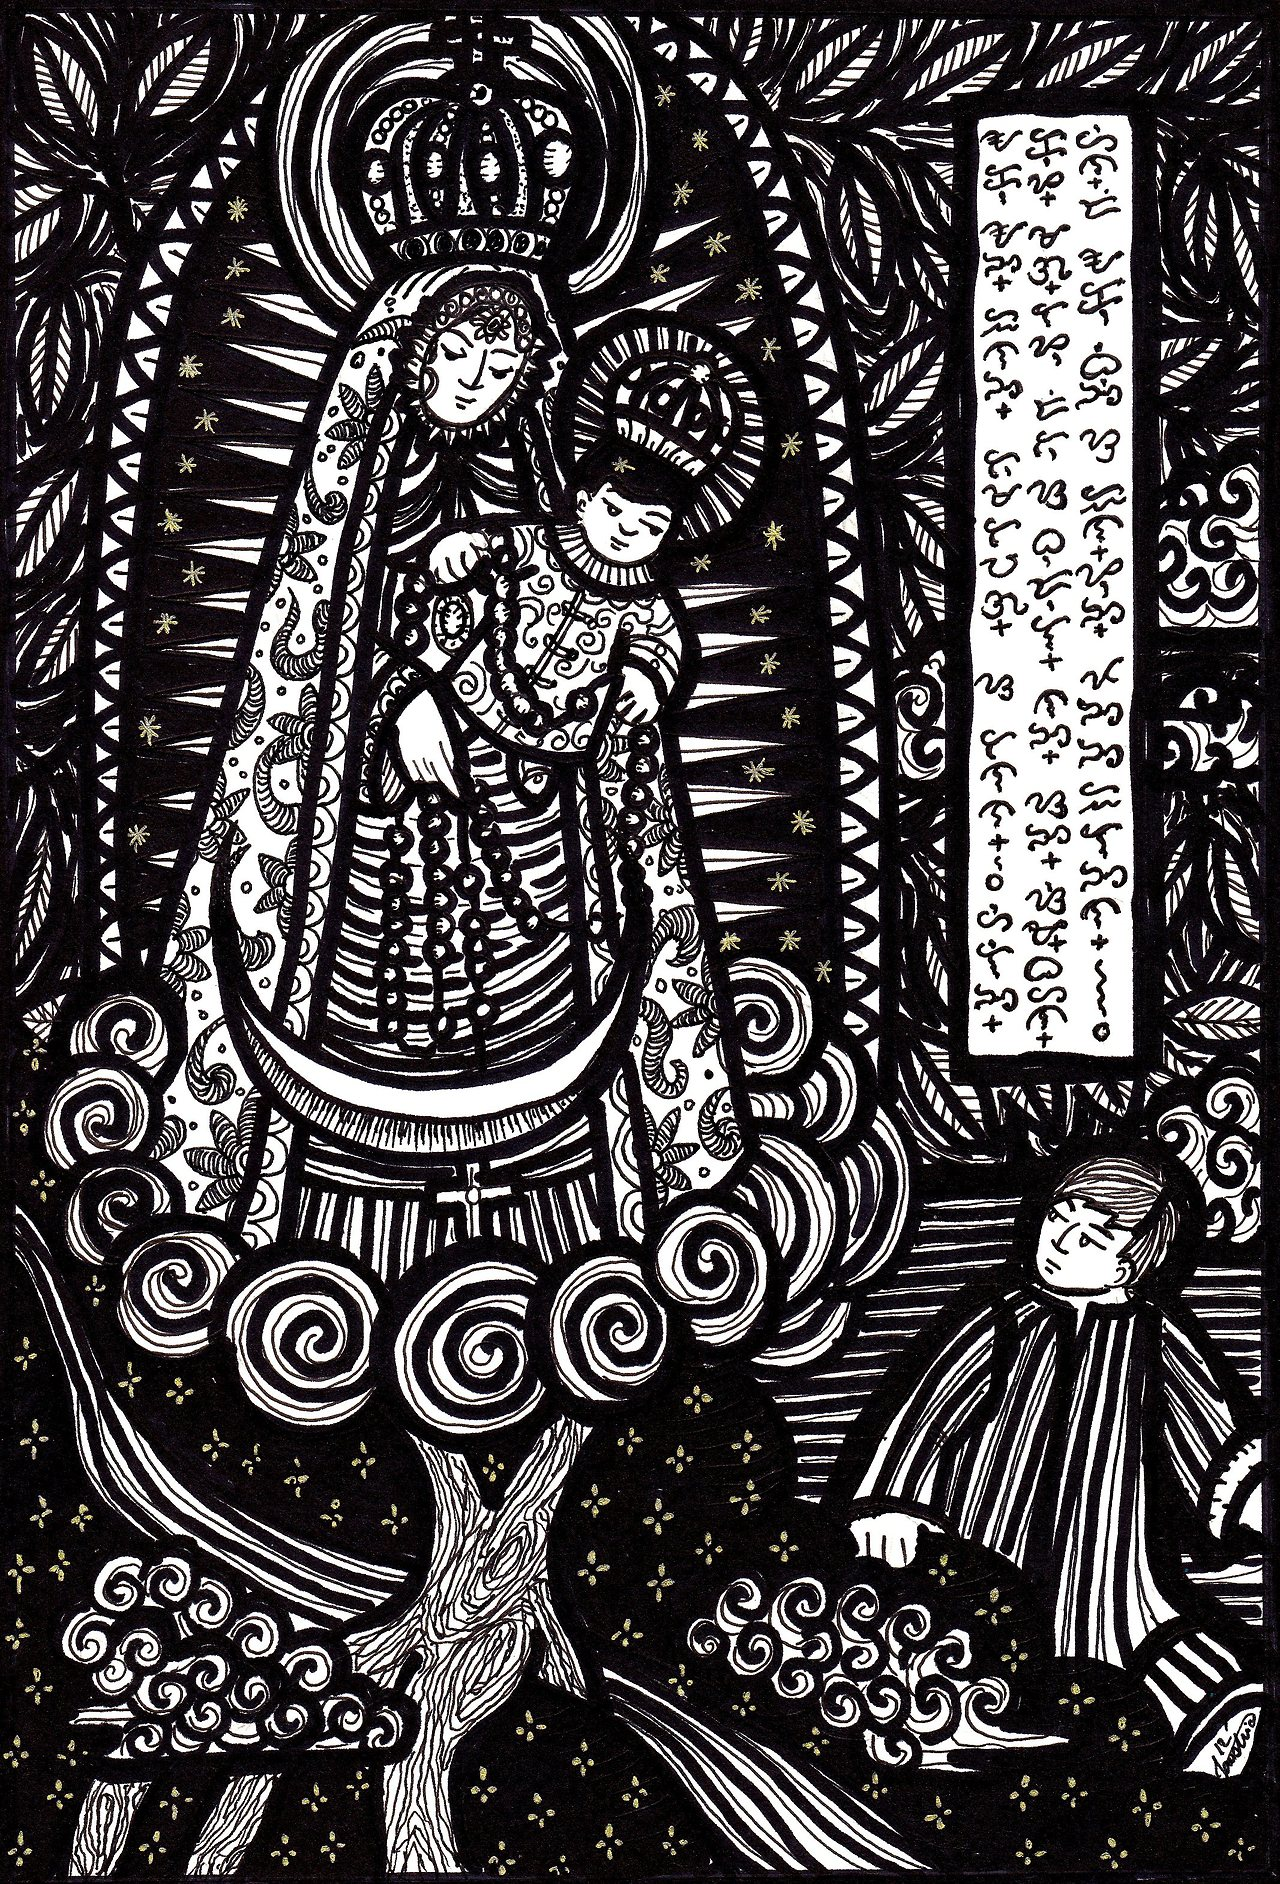 Apparition of Our Lady of Manaoag, from the Virgencita Series by Alain Austria